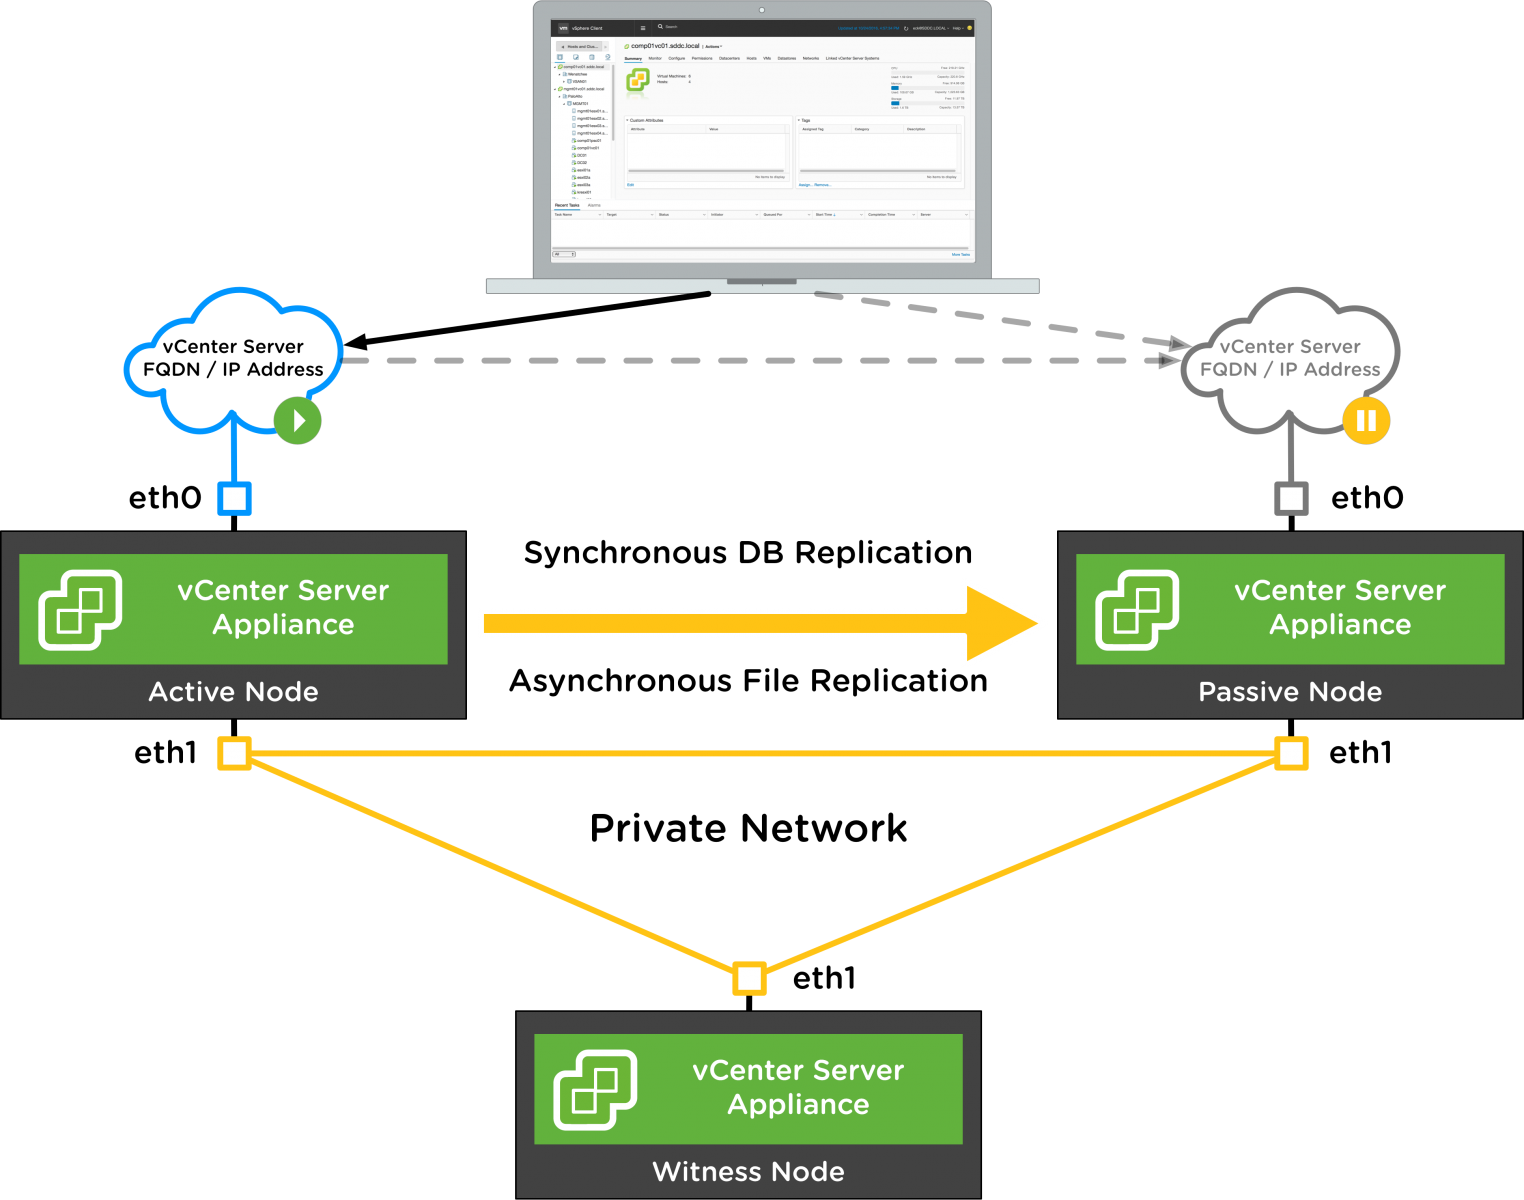 vCenter High Availability Deployment - Basic workflow